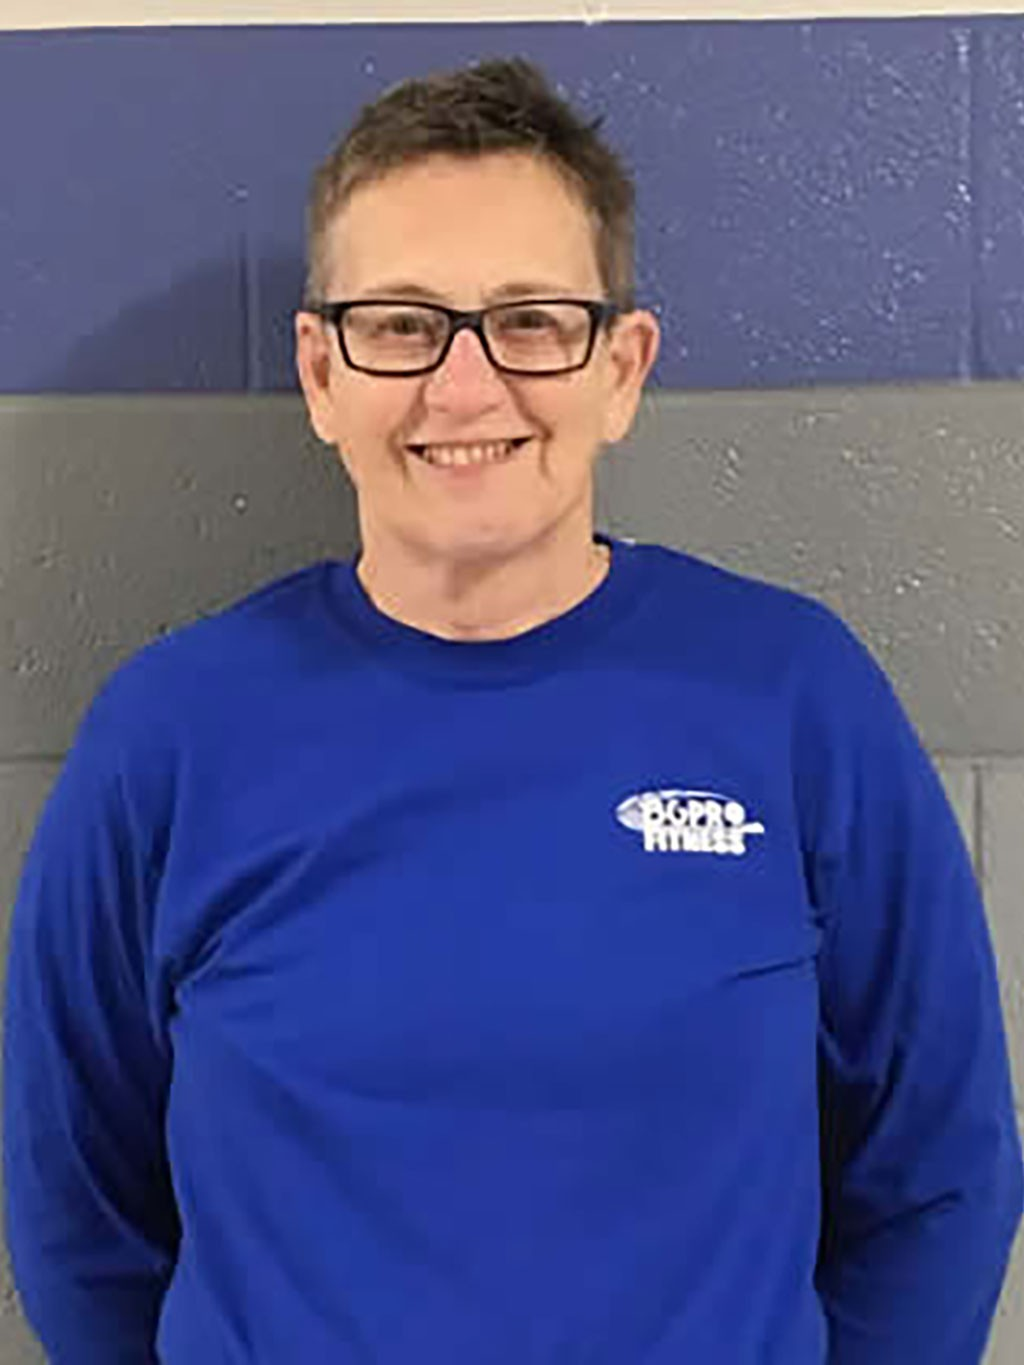 Fitness Staff - Linda Gaines